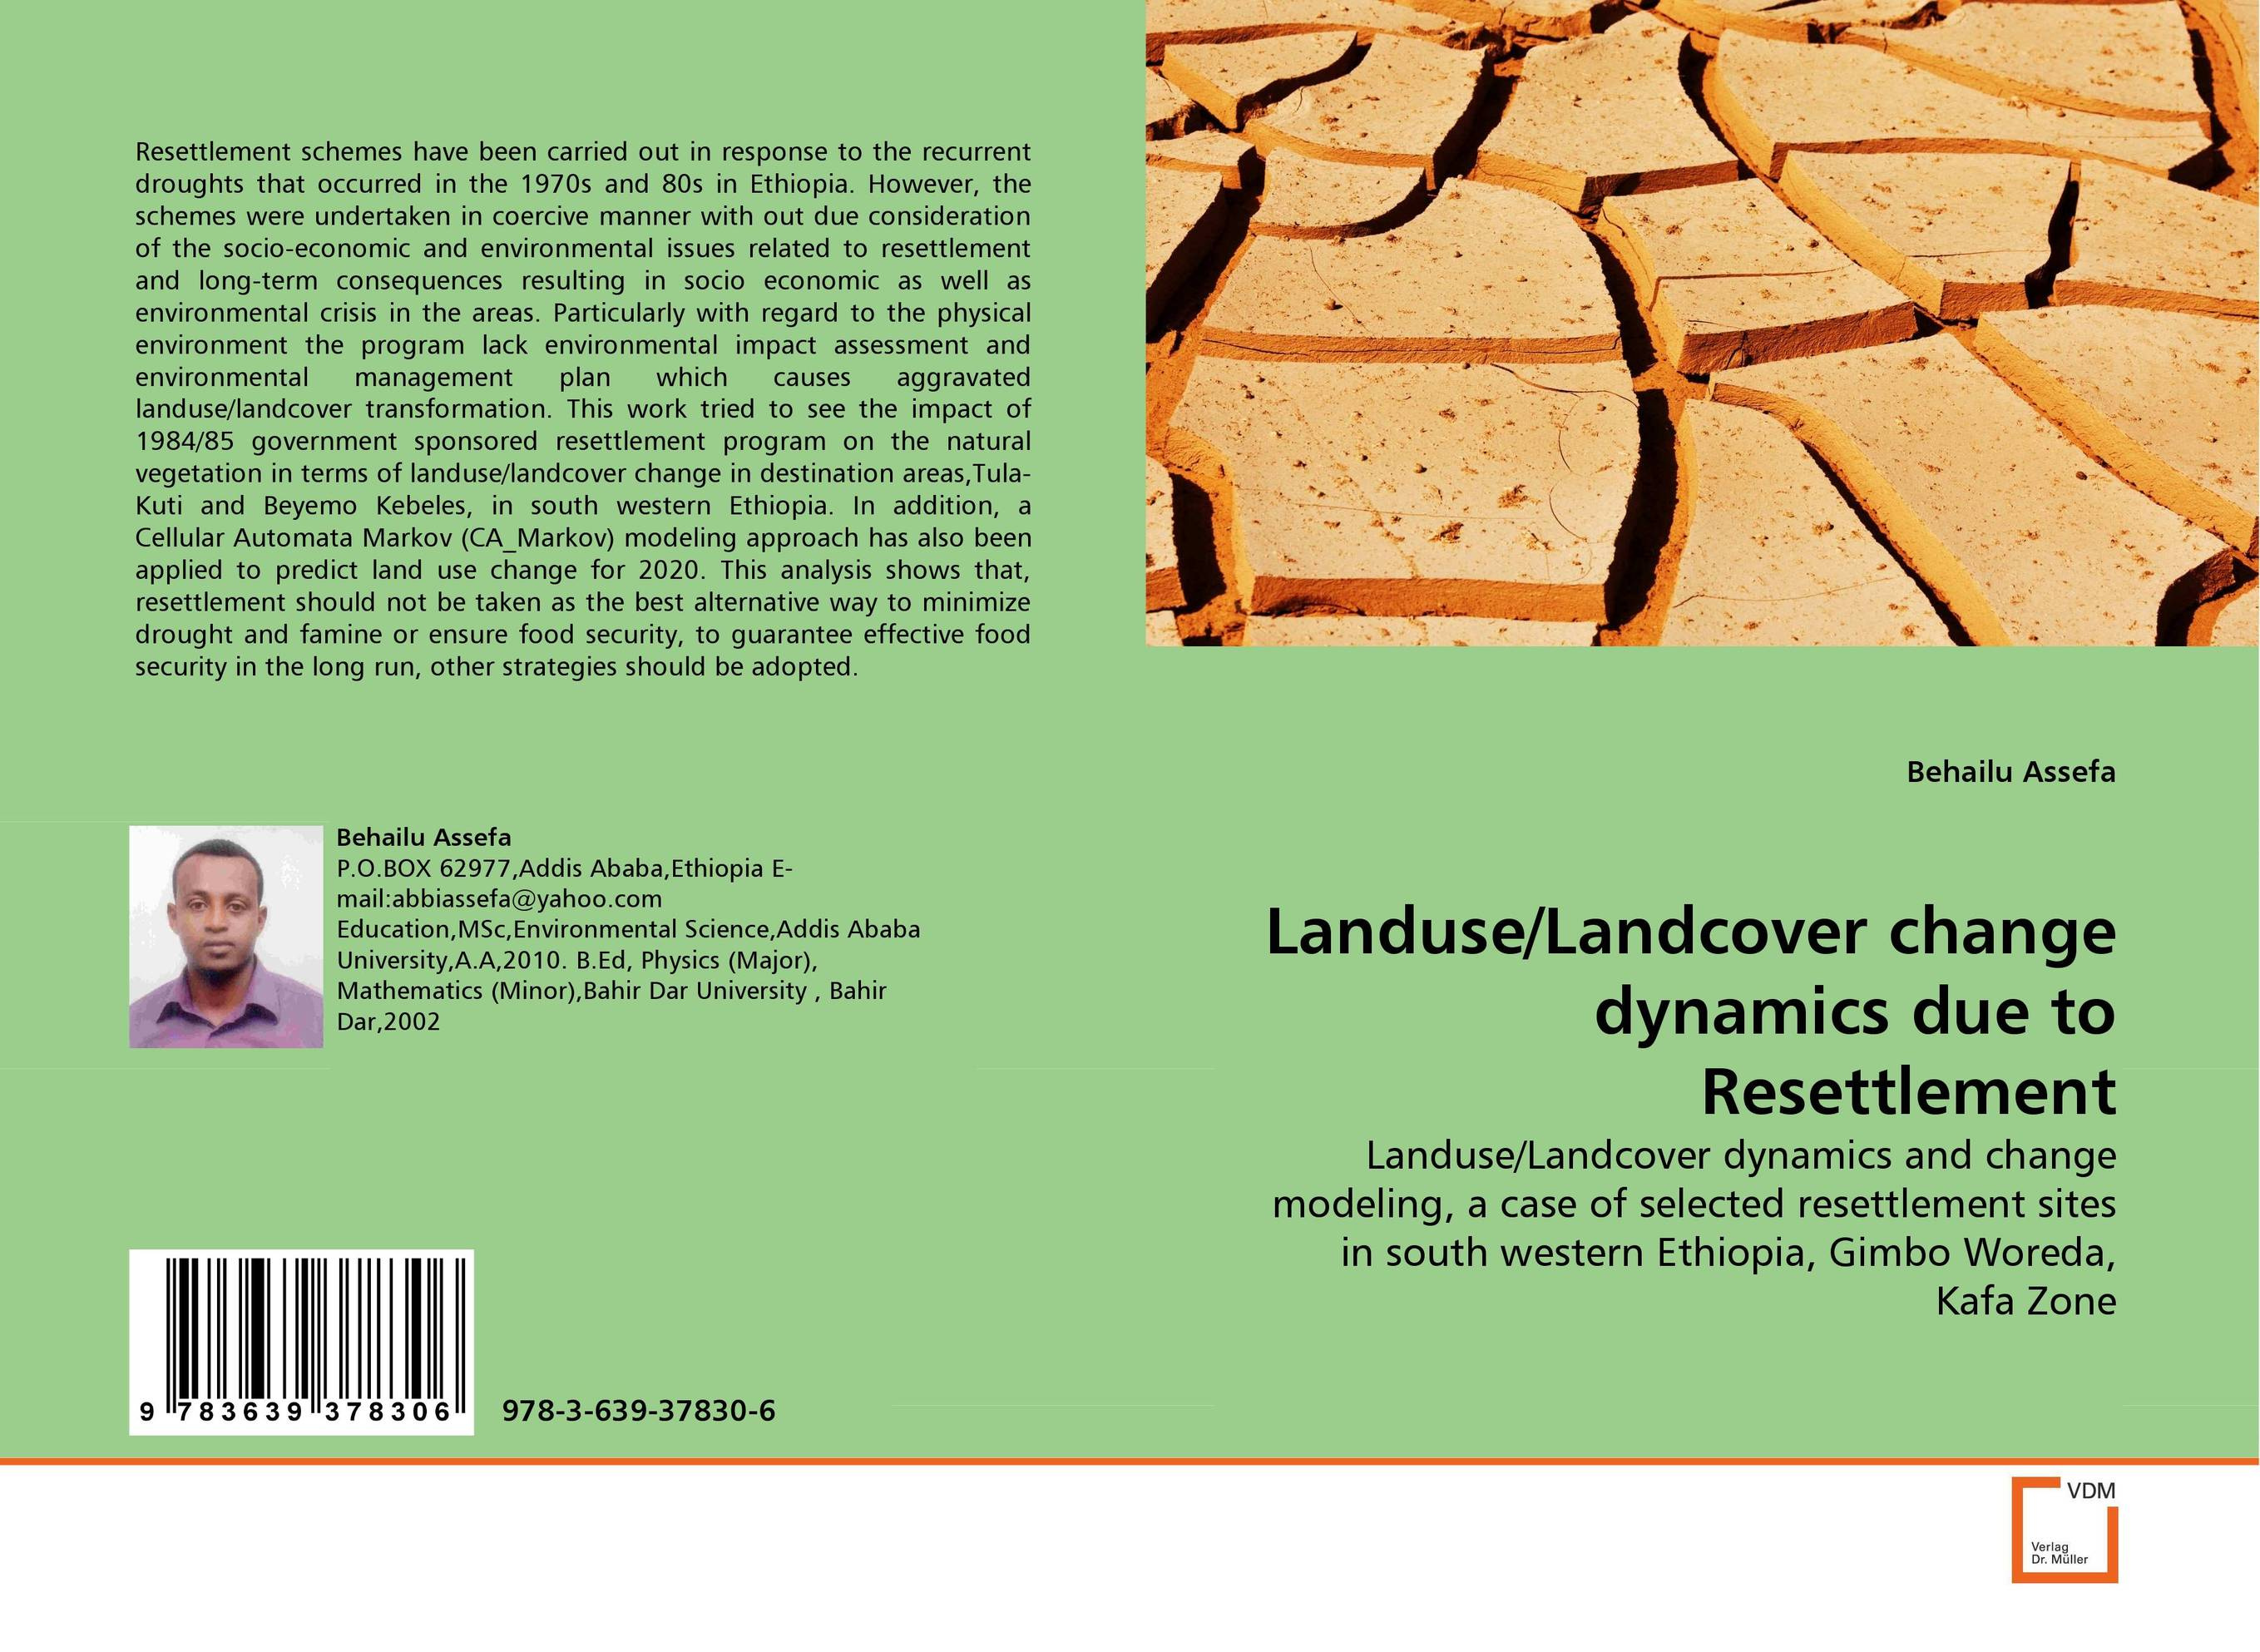 Фото Landuse/Landcover change dynamics due to Resettlement cervical cancer in amhara region in ethiopia